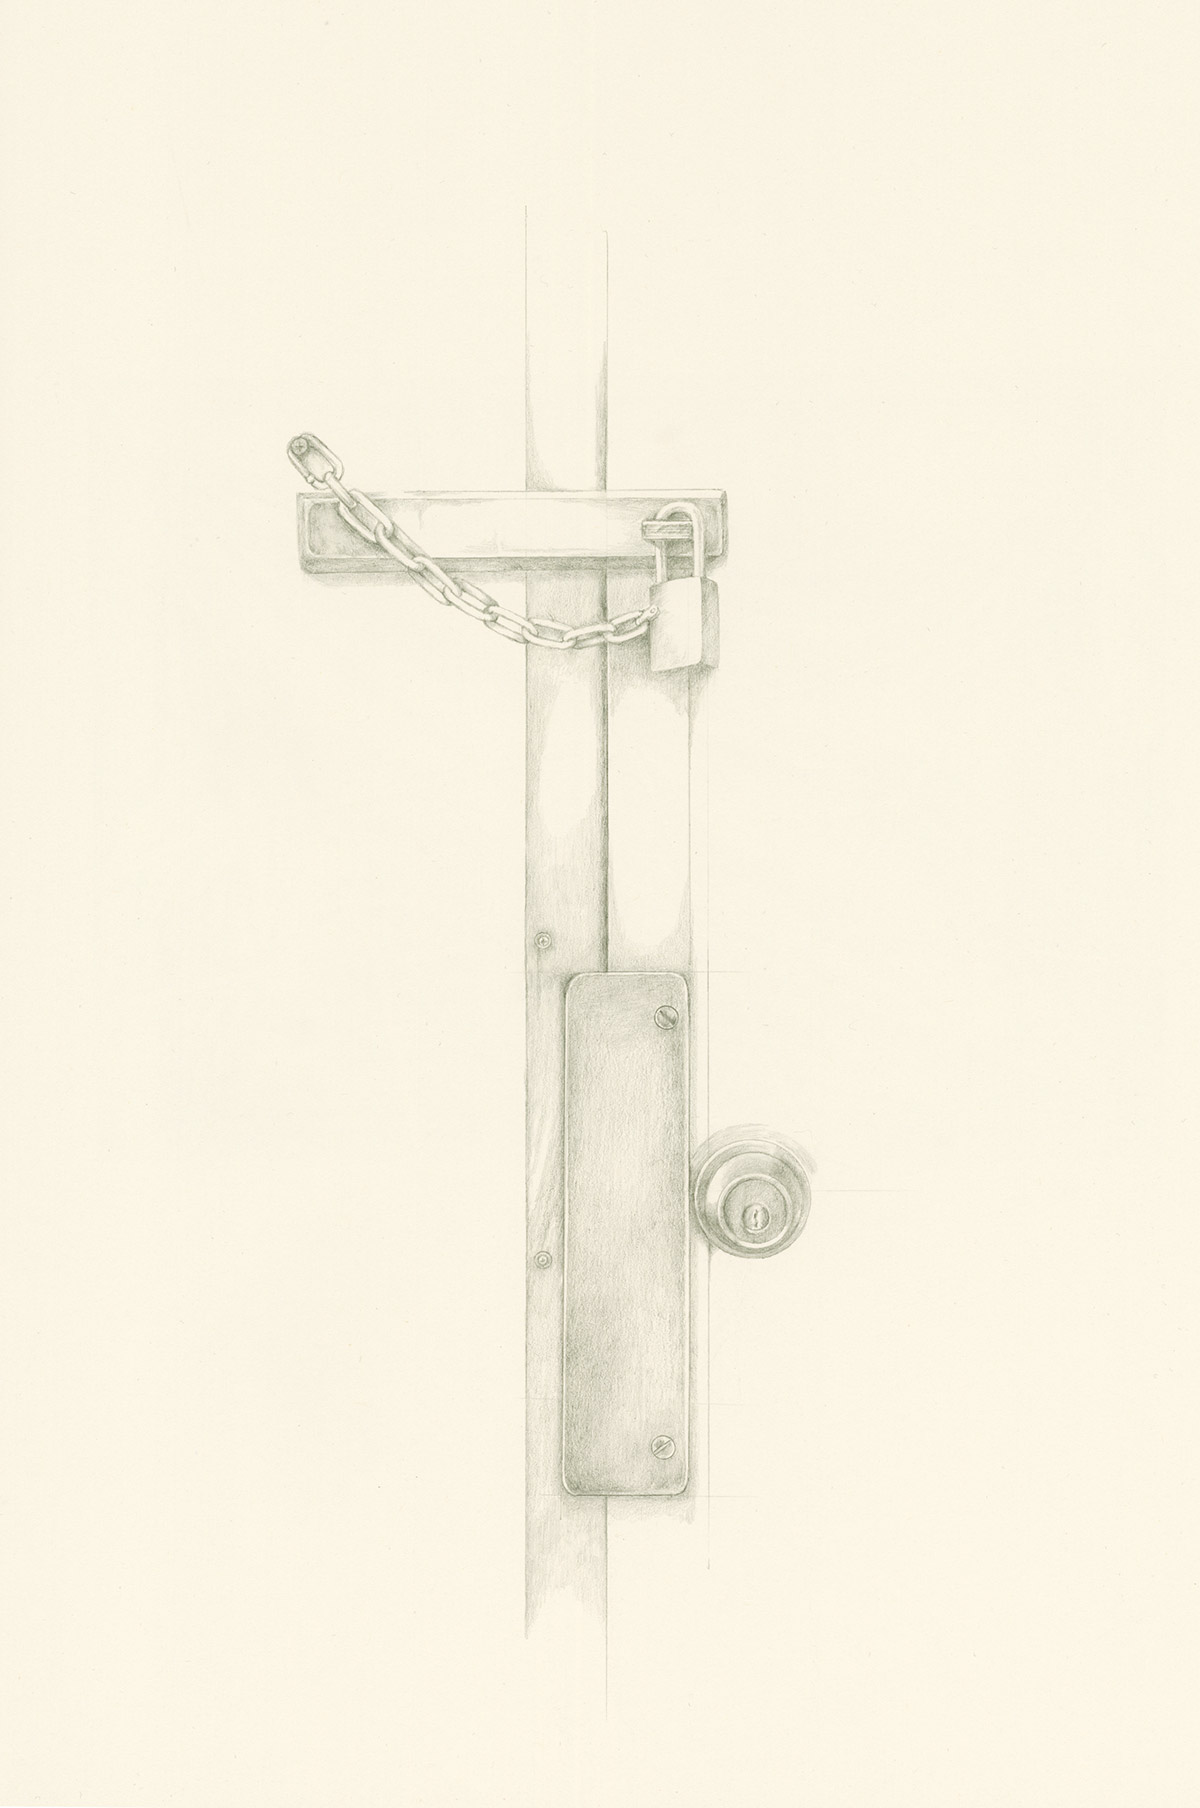 Lock and chain drawing by Iskra